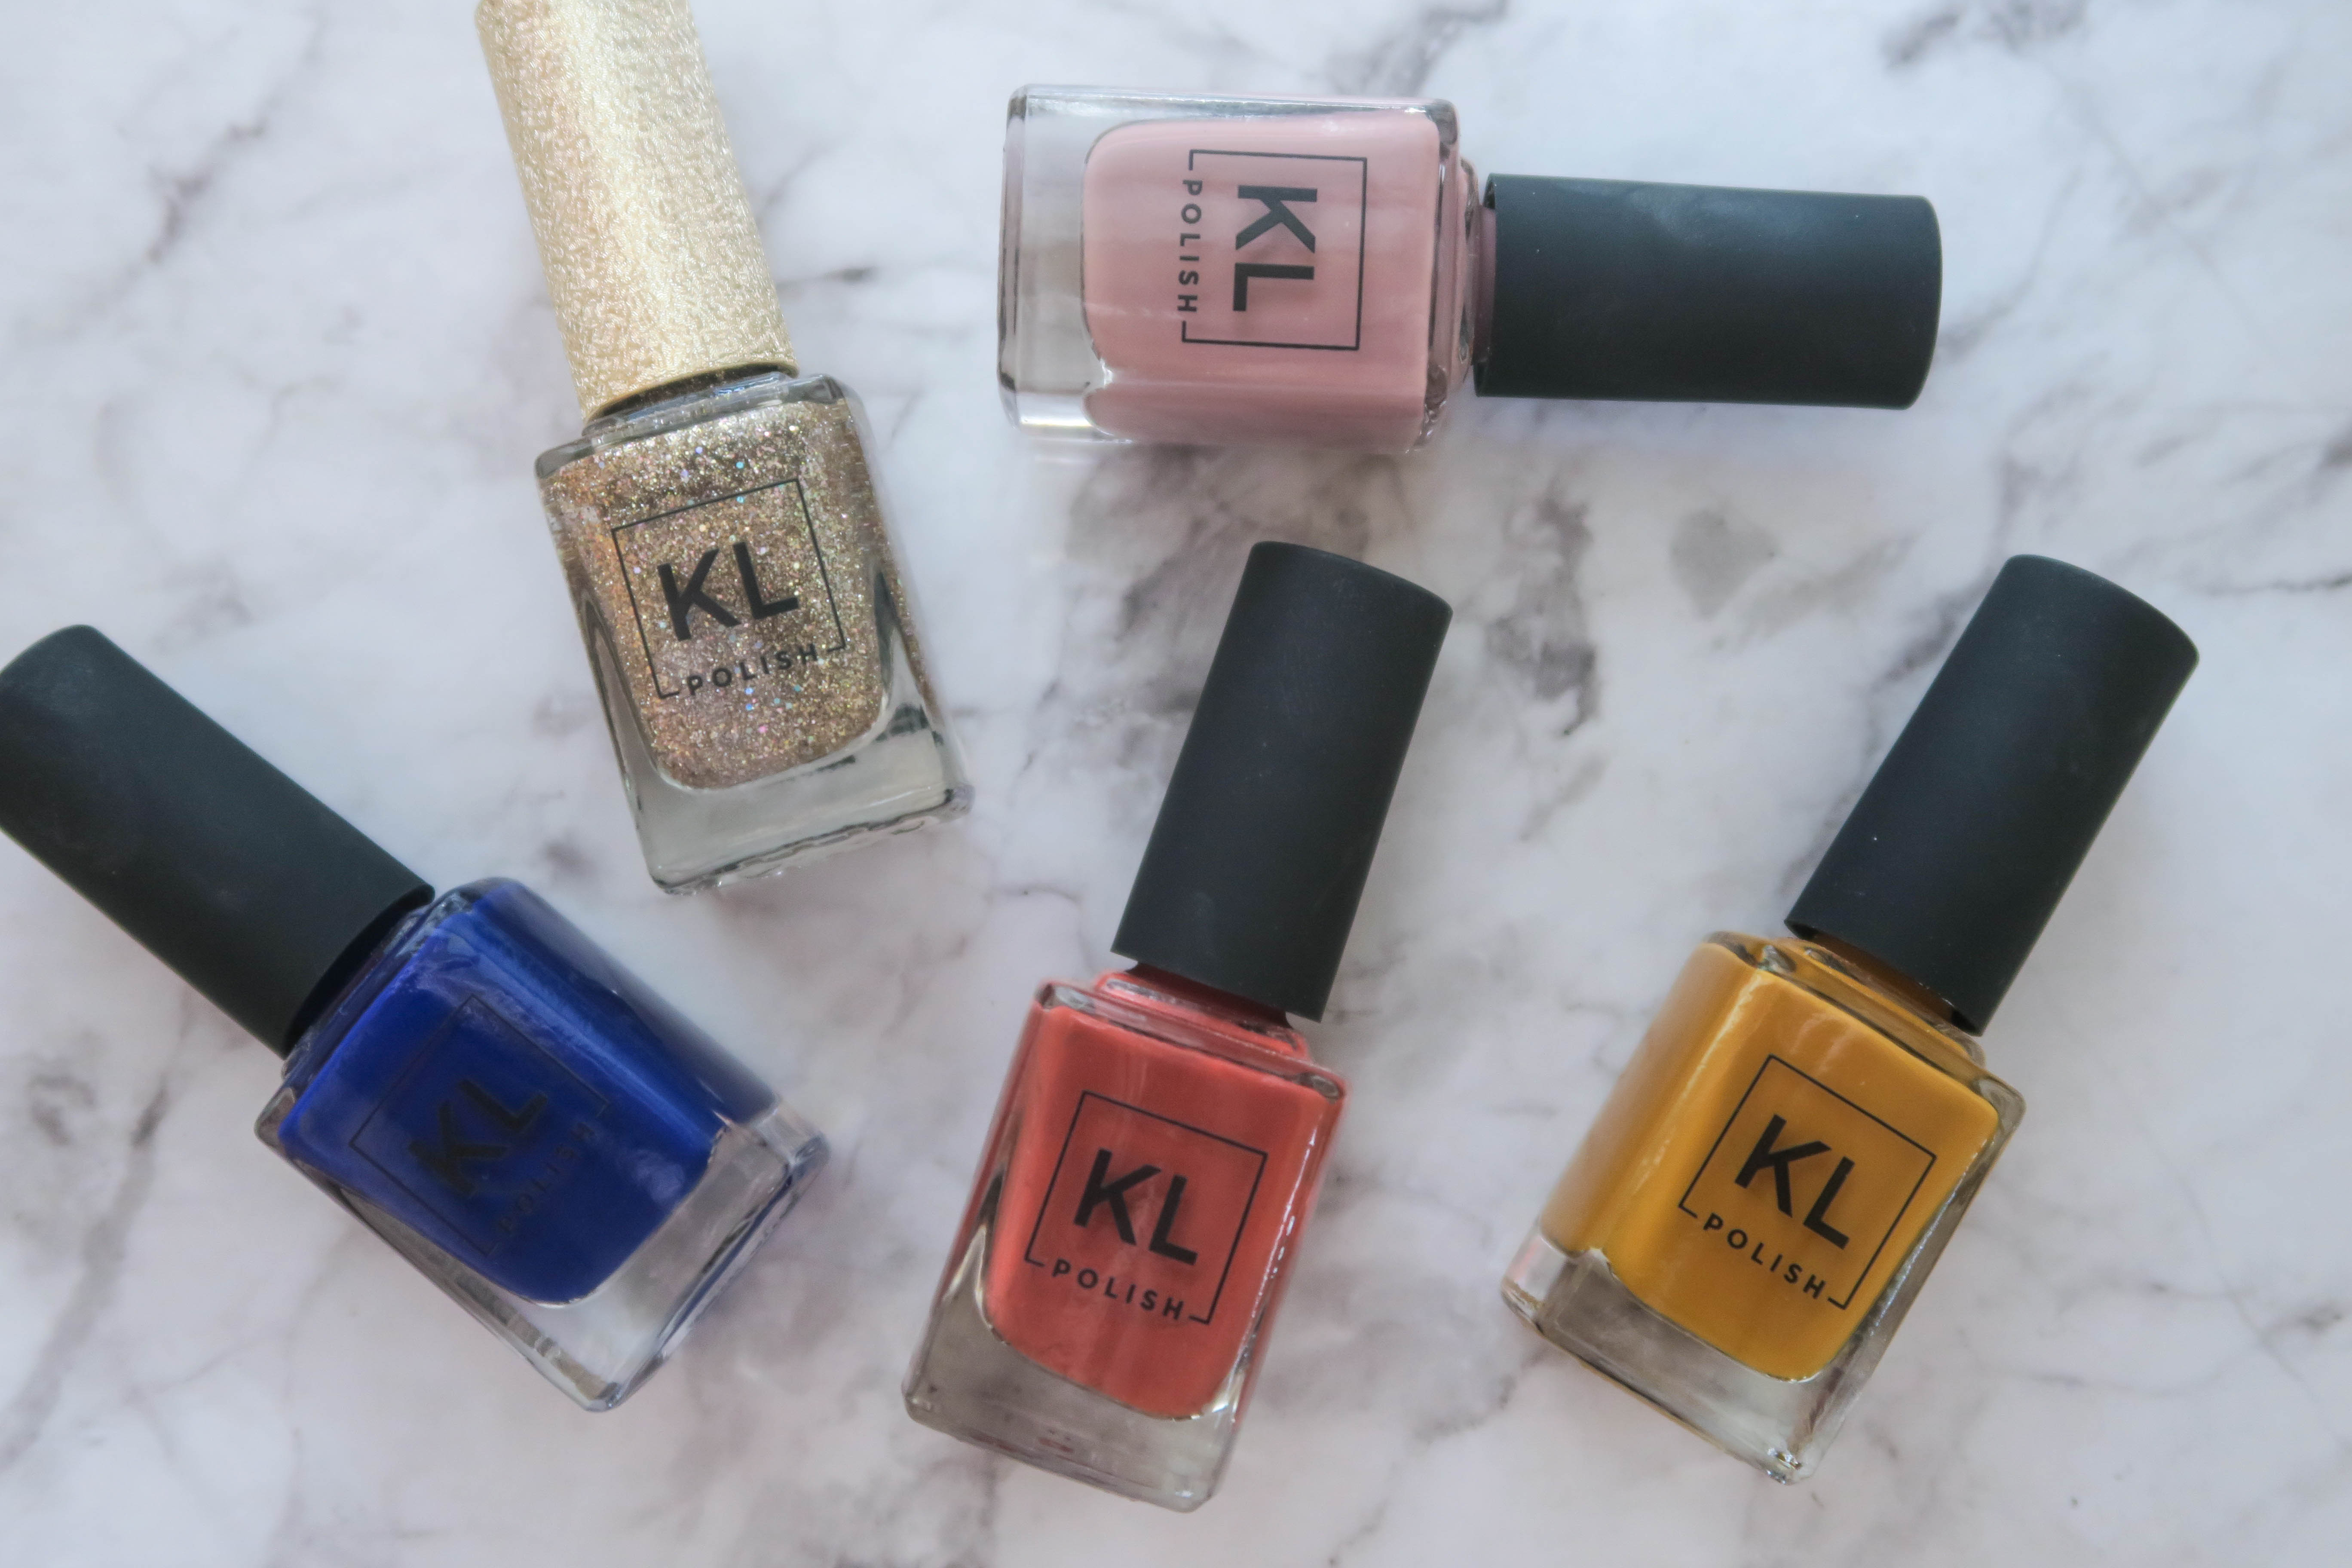 KL Polish Review | Life With Kendal